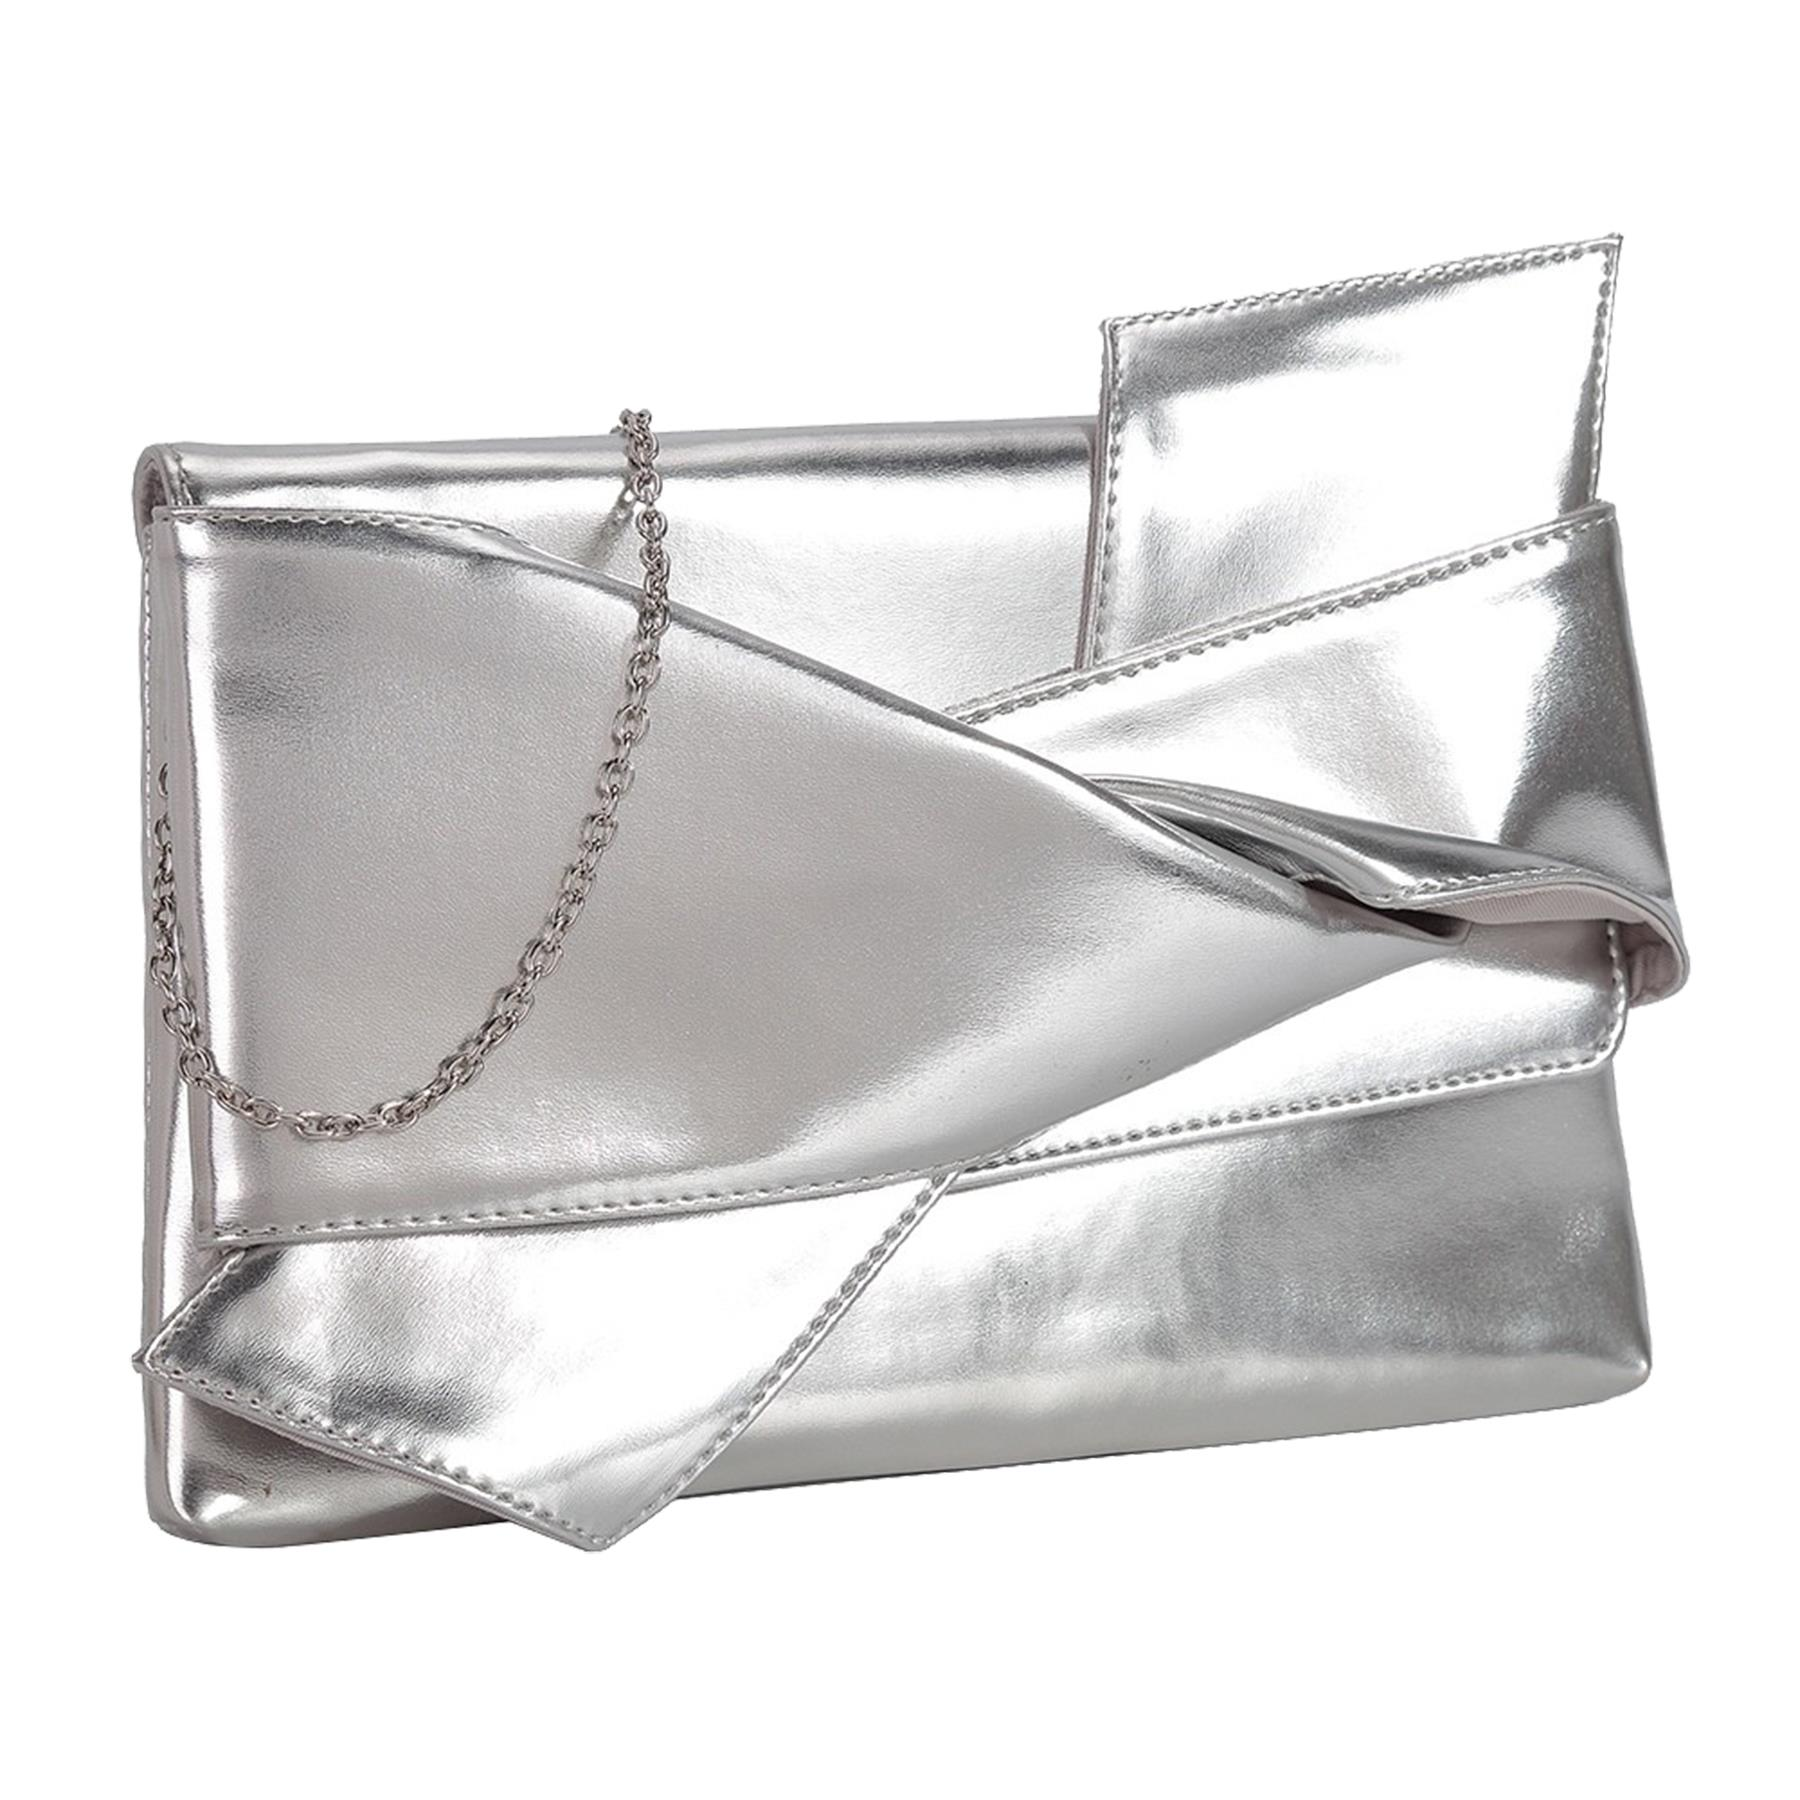 New-Knot-Detail-Shiny-Synthetic-Leather-Ladies-Party-Clutch-Bag-Purse thumbnail 15